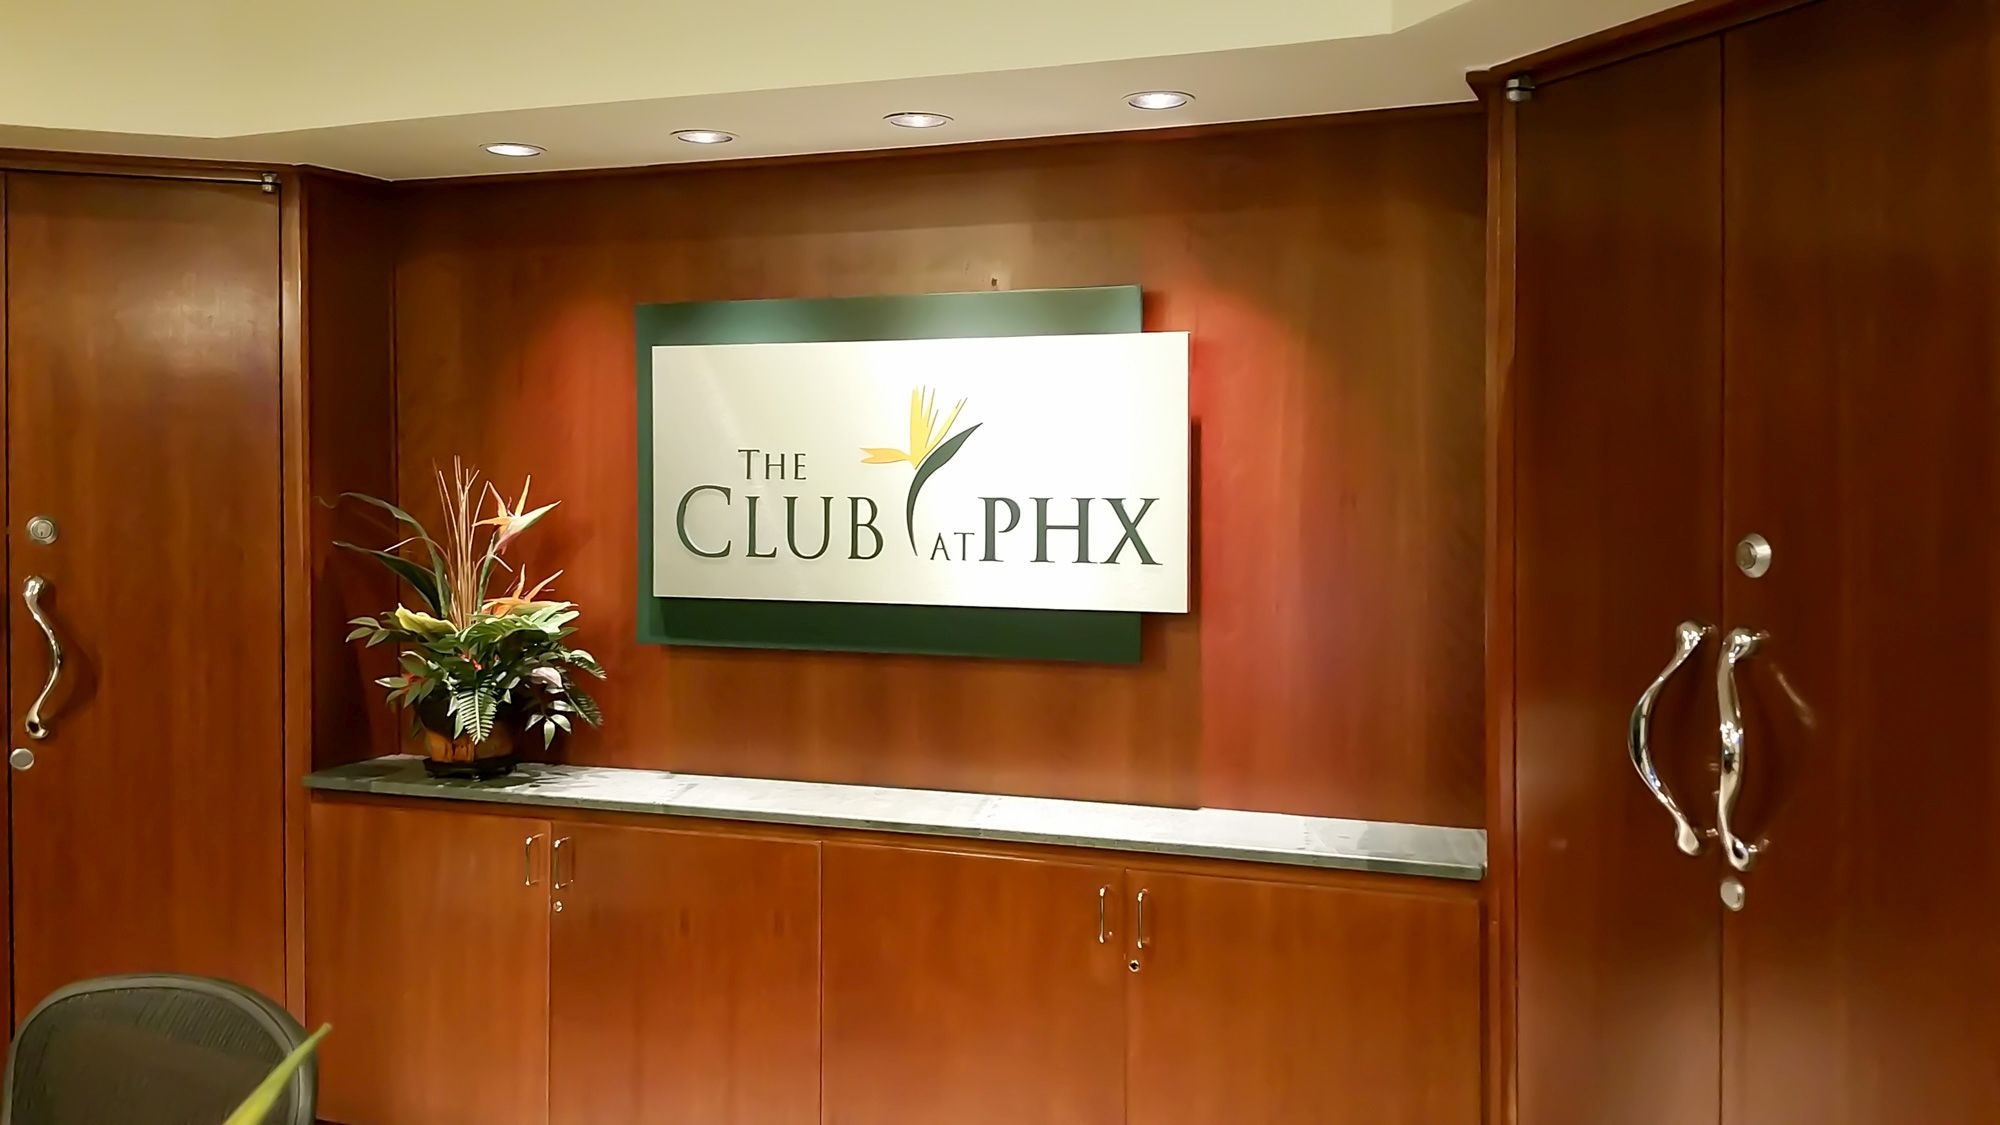 The Club at PHX